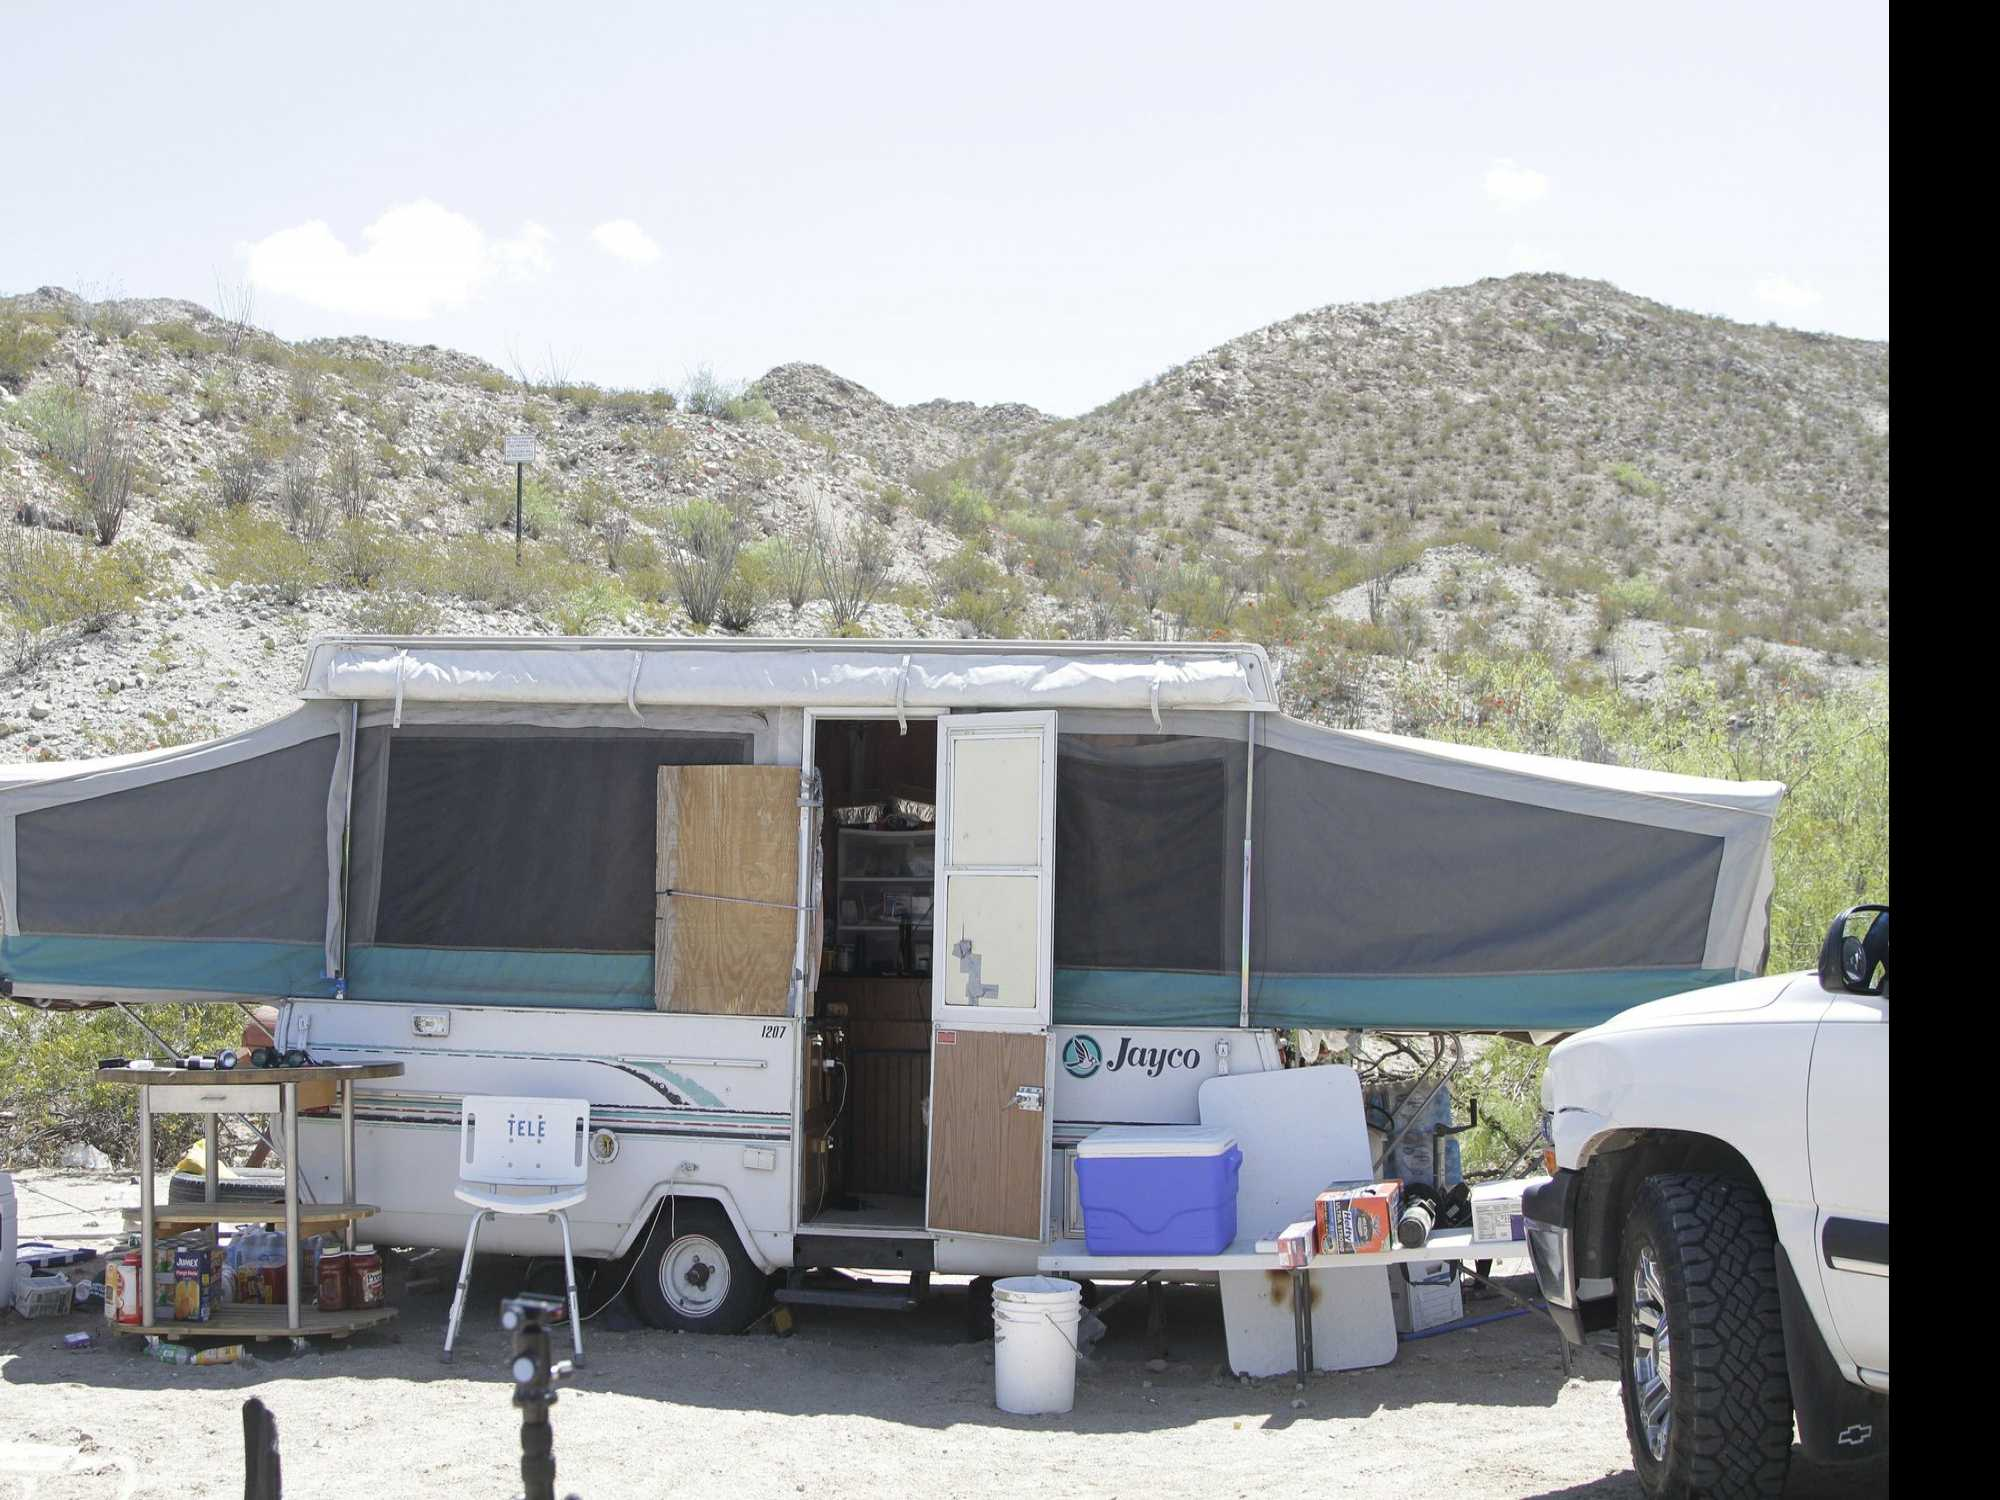 Armed Border Group Shuts Down Camp in New Mexico